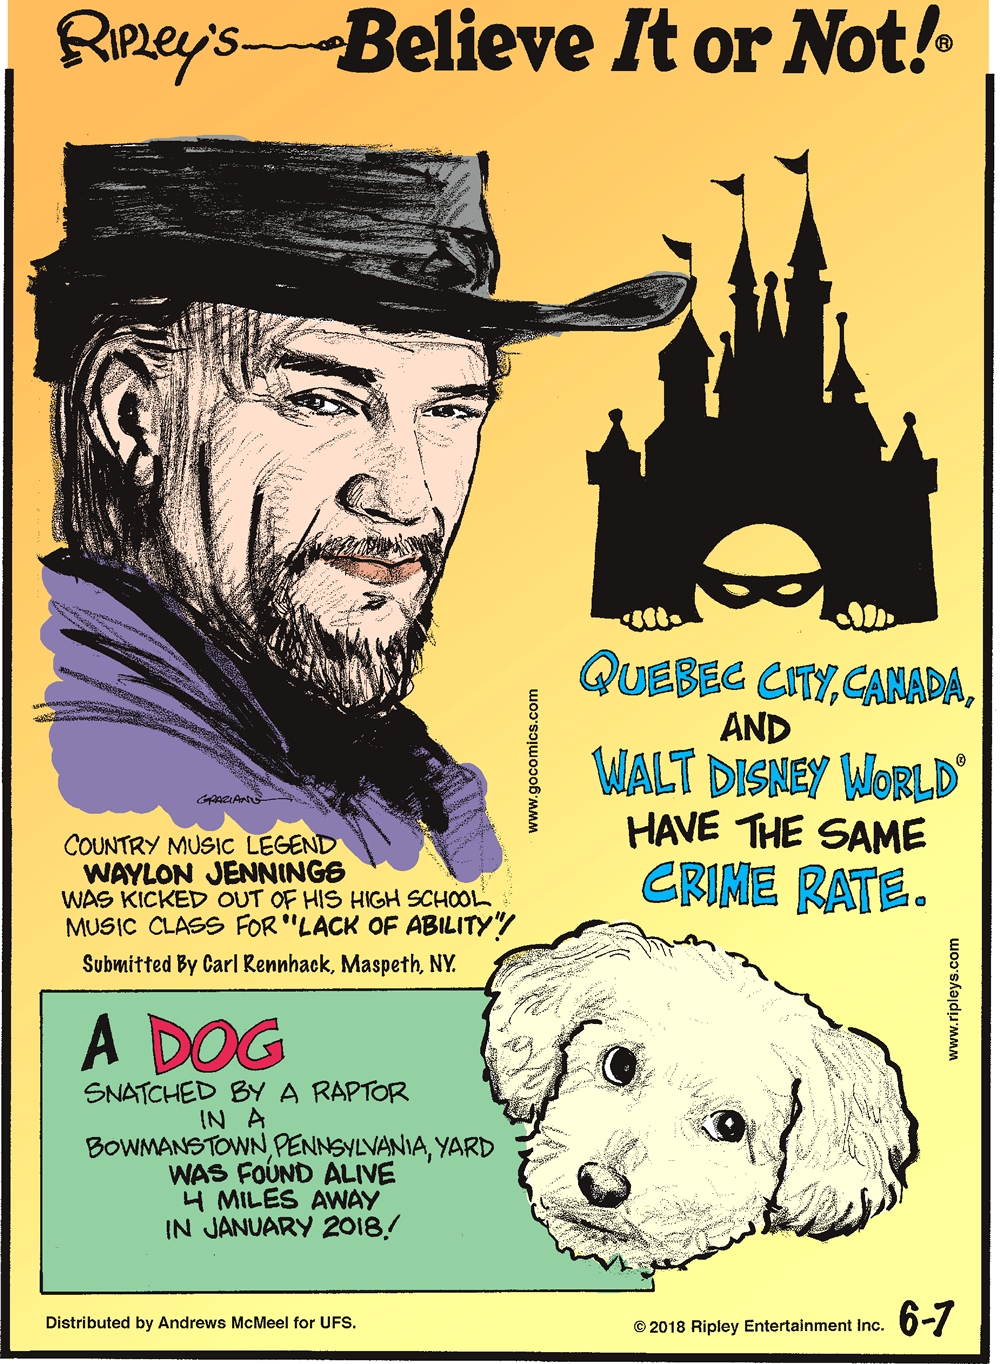 """Quebec City, Canada, and Walt Disney World have the same crime rate.-------------------- Country music legend Waylon Jennings was kicked out of his high school music class for """"lack of ability""""! Submitted by Carl Rennhack, Maspeth, NY.-------------------- A dog snatched by a raptor in a Bowmanstown, Pennsylvania, yard was found alive 4 miles away in January 2018!"""